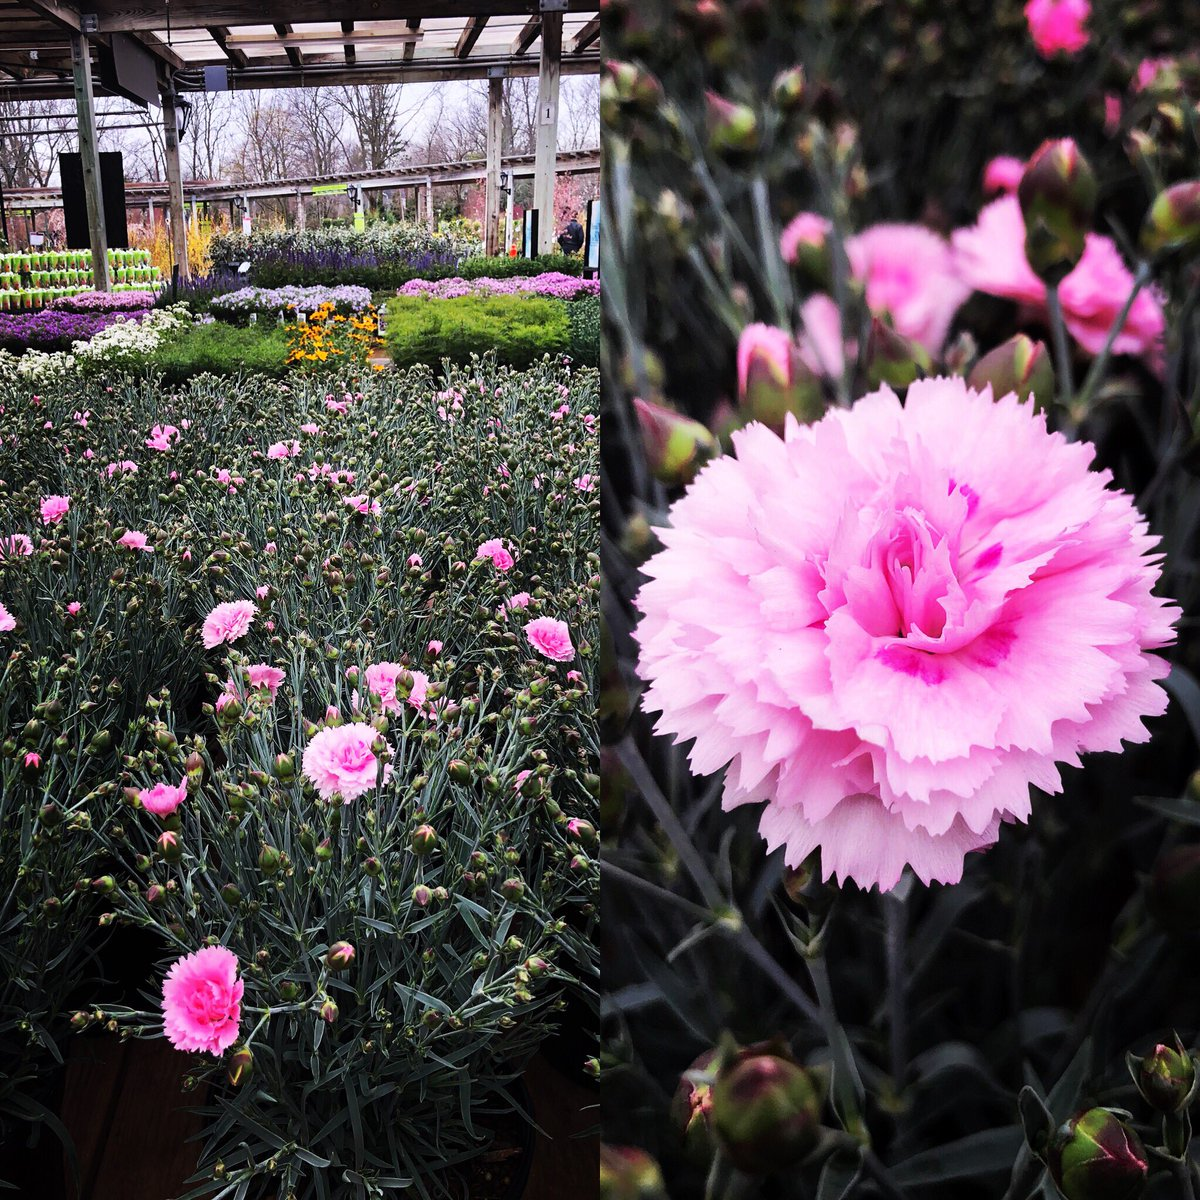 Hicks nurseries on twitter dianthus candy floss is a beautiful a beautiful perennial that comes back in your garden every year longisland dianthus flowers perennials gardening flowers planting springblooms mightylinksfo